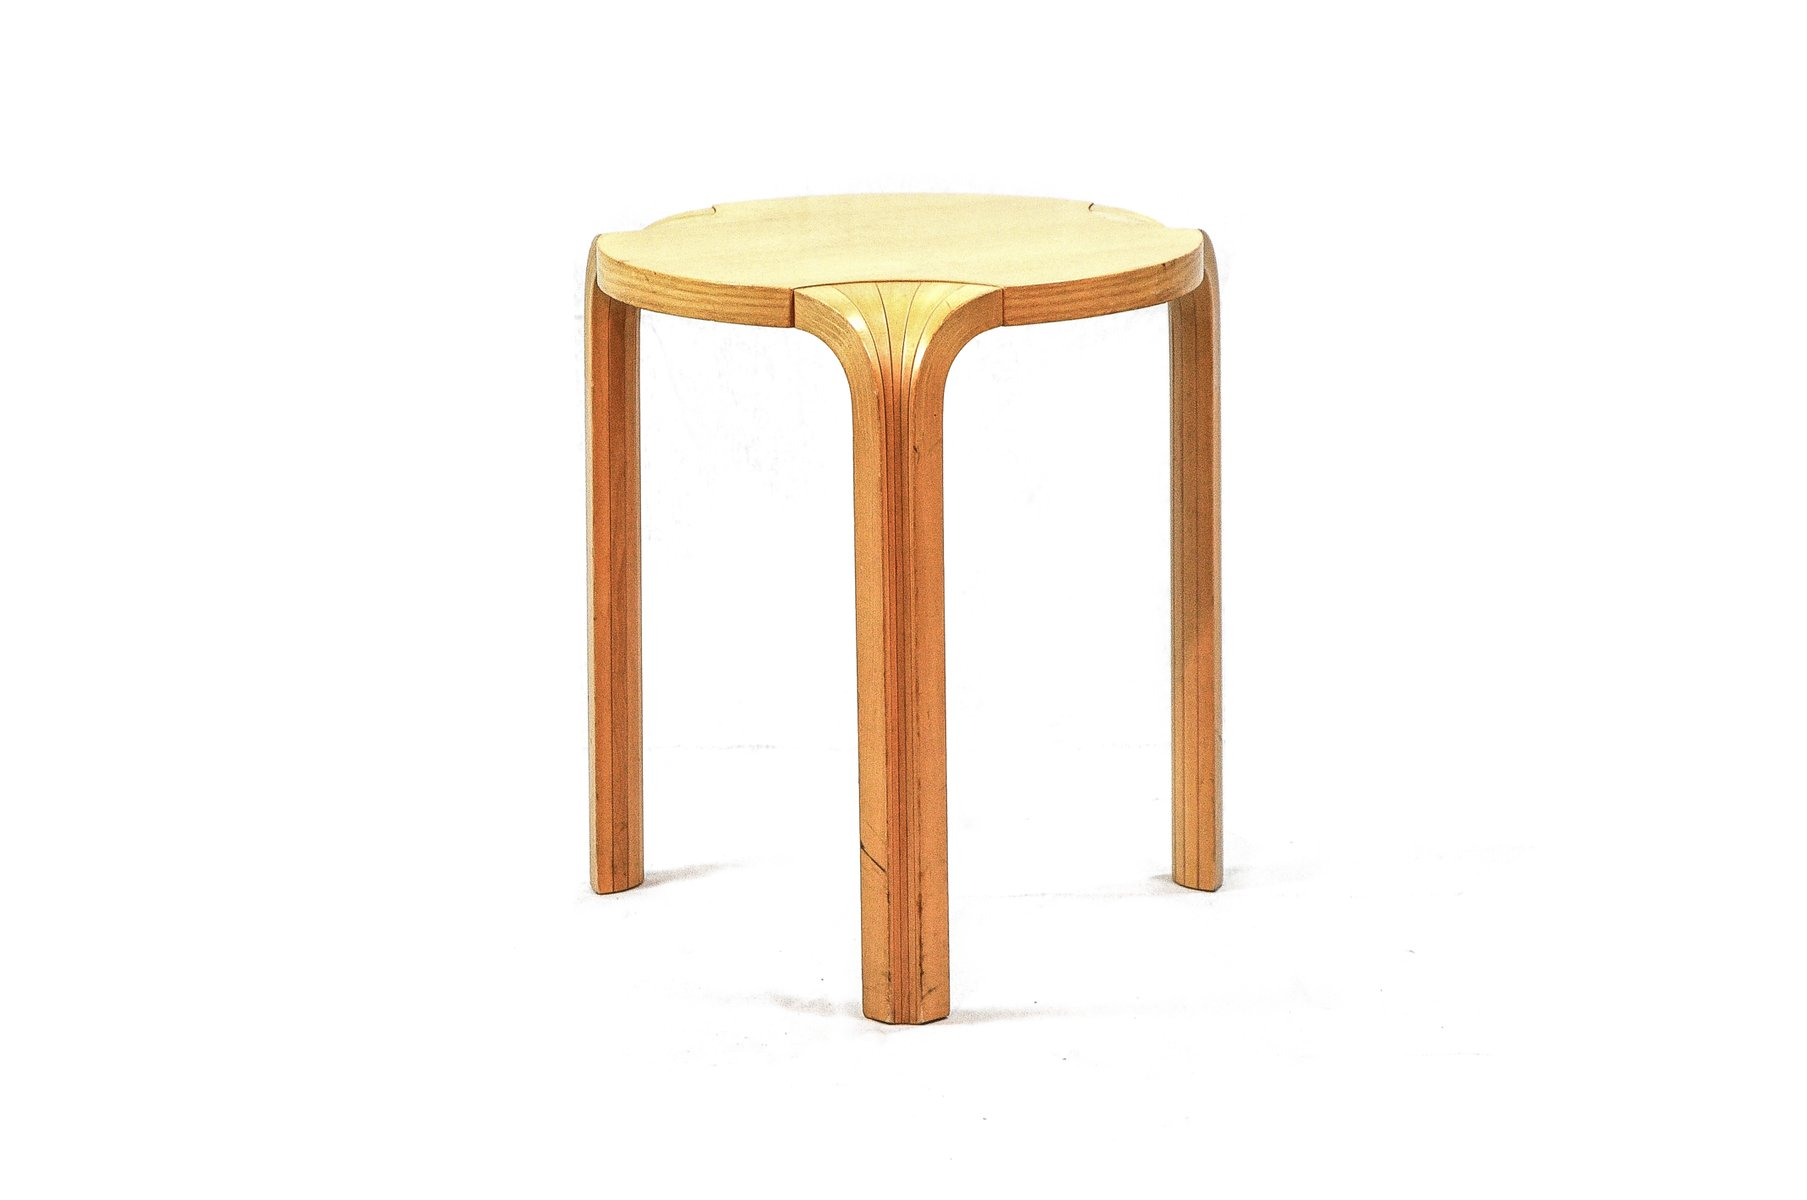 Vintage x600 stool by alvar aalto for artek for sale at pamono for Alvar aalto chaise